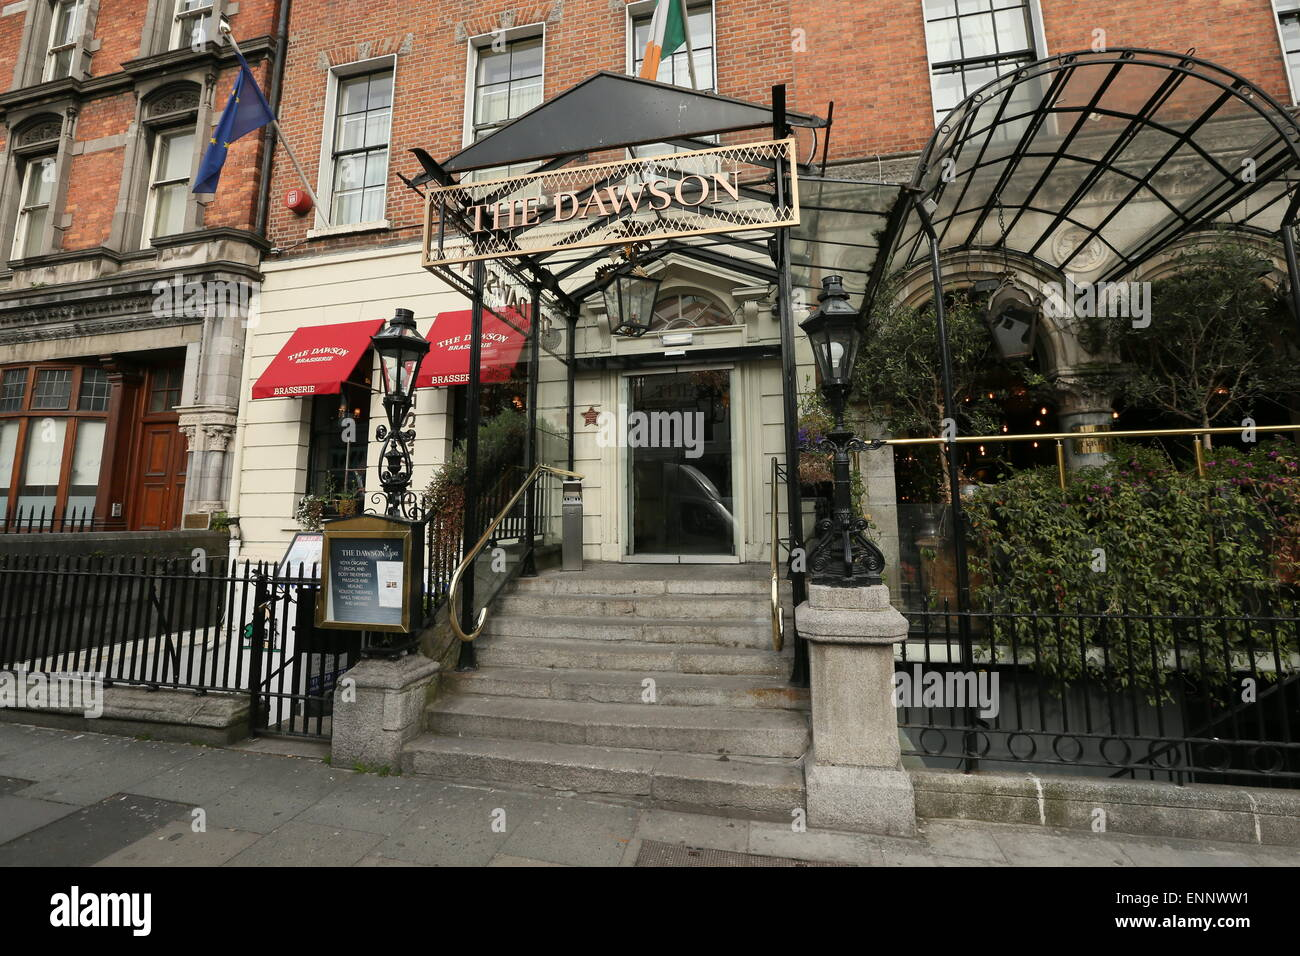 Image Of The Dawson Hotel On Dawson Street In Dublin City Centre The Stock Photo Royalty Free